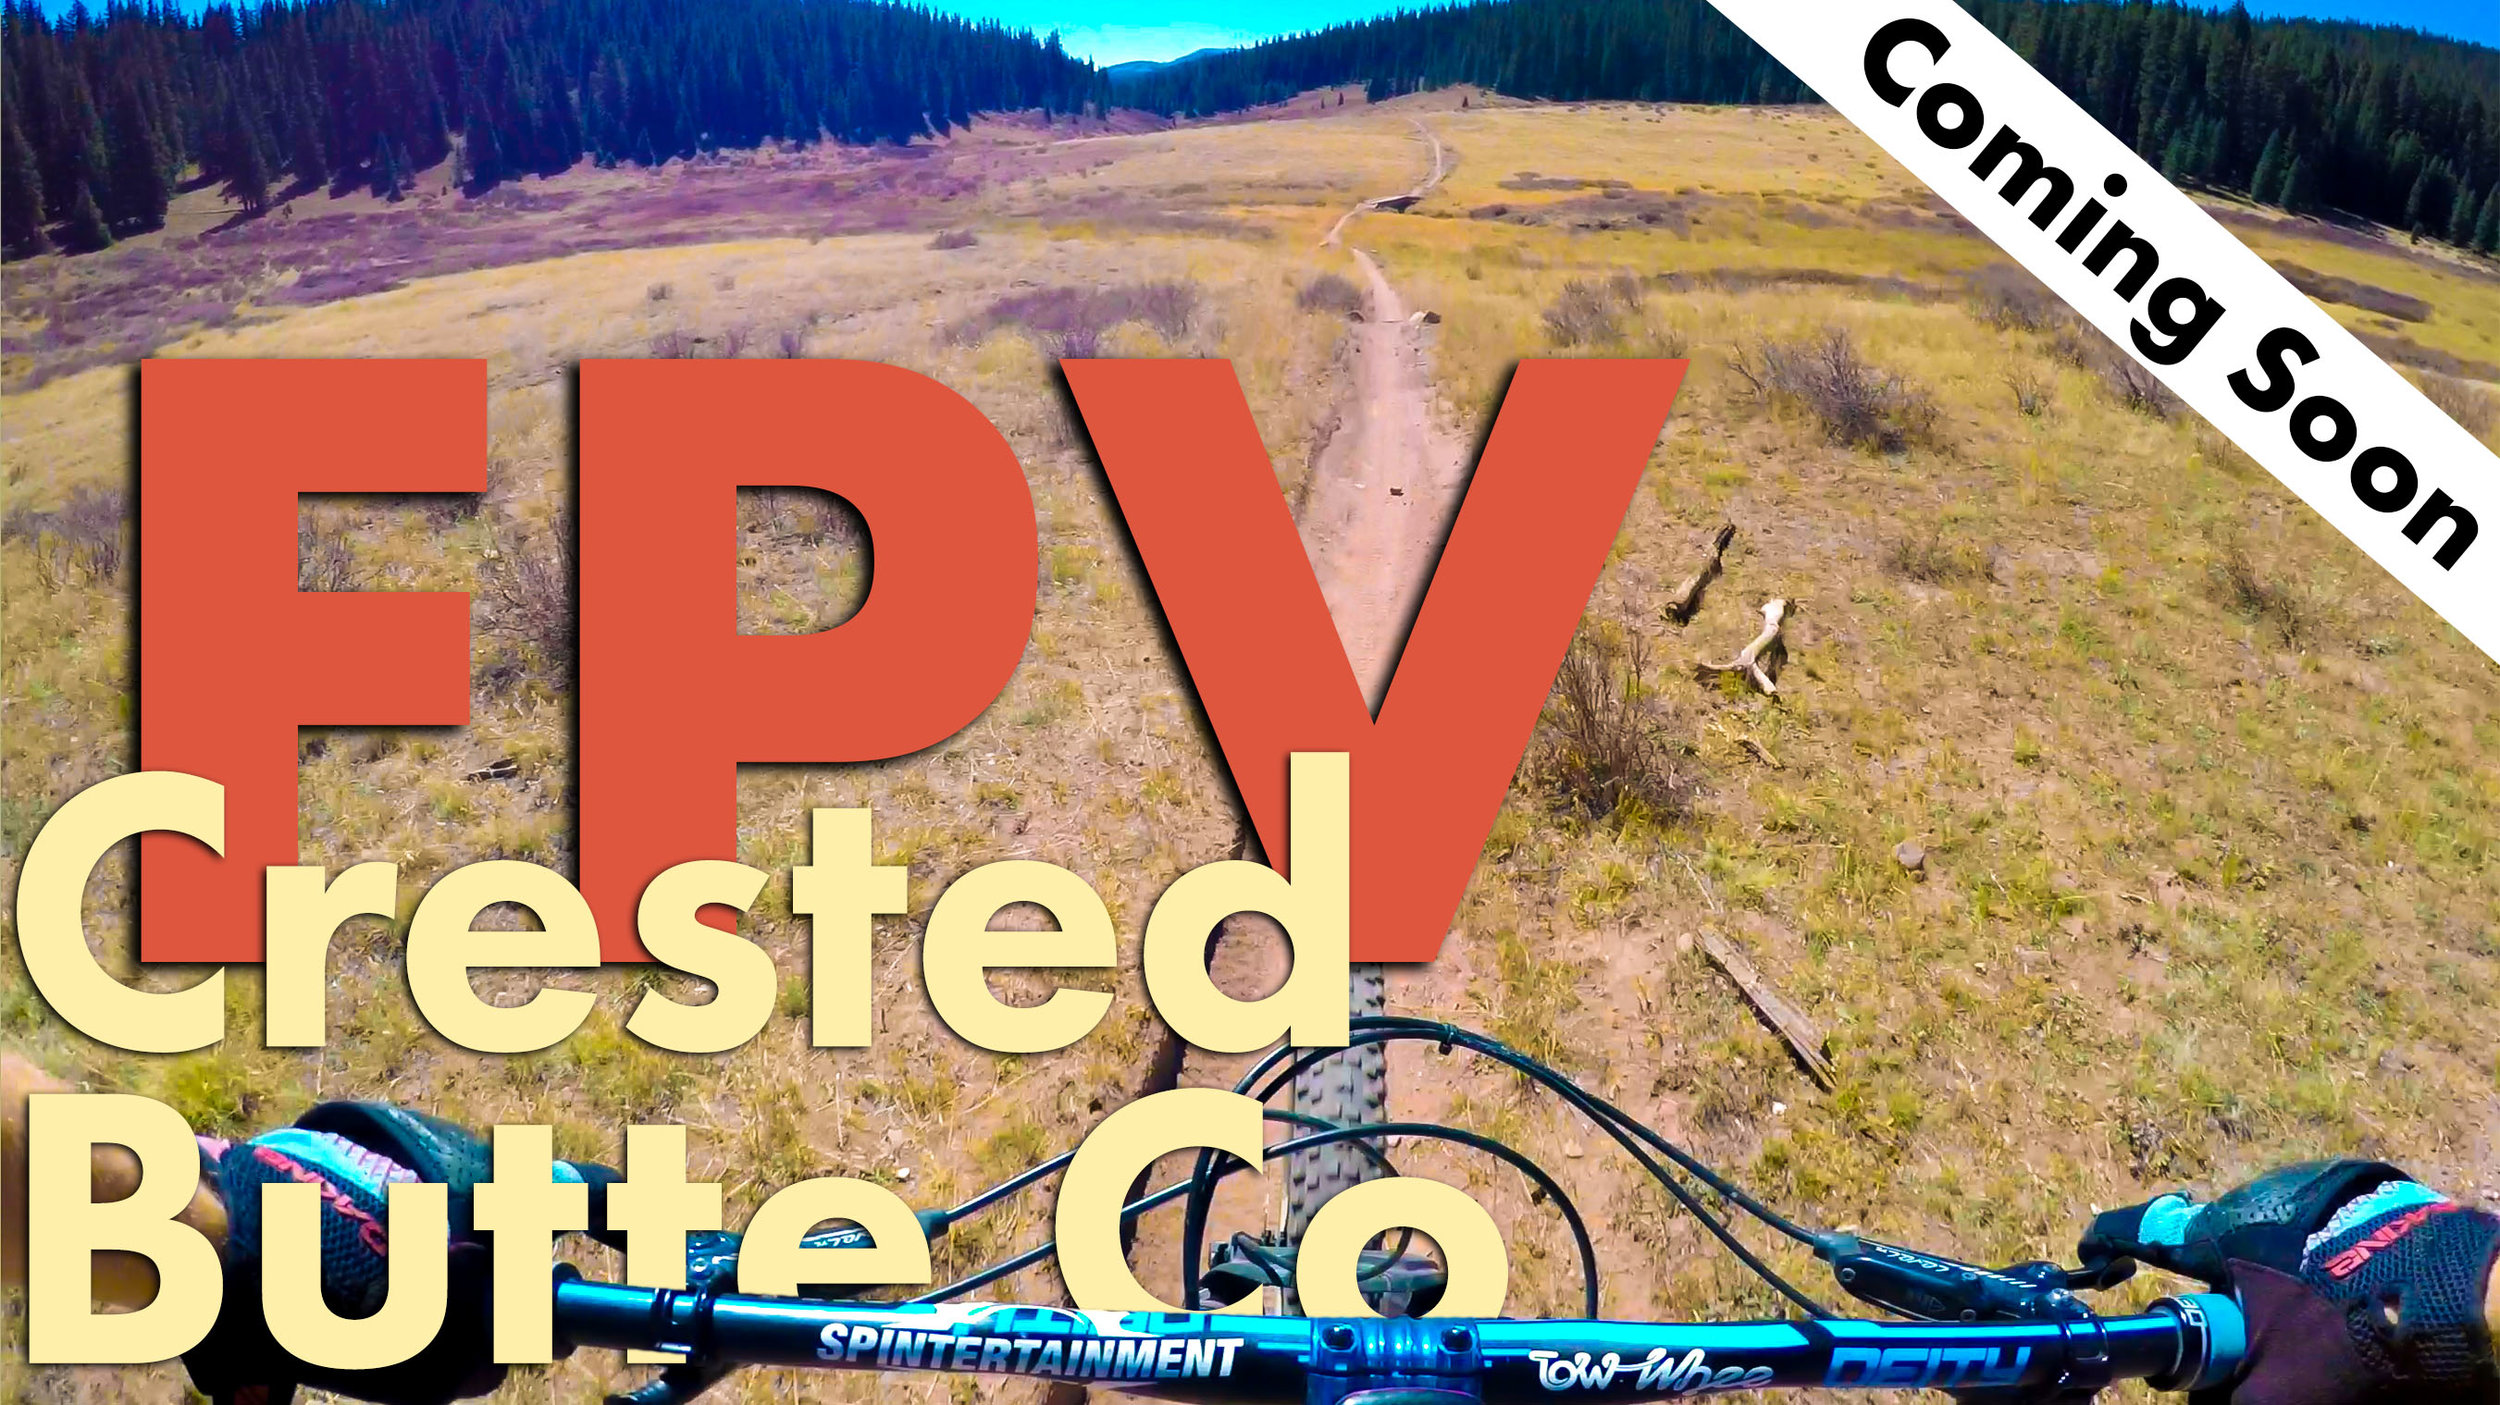 Crested Butte FPV Thumbnail Authentic COMING SOON.jpg